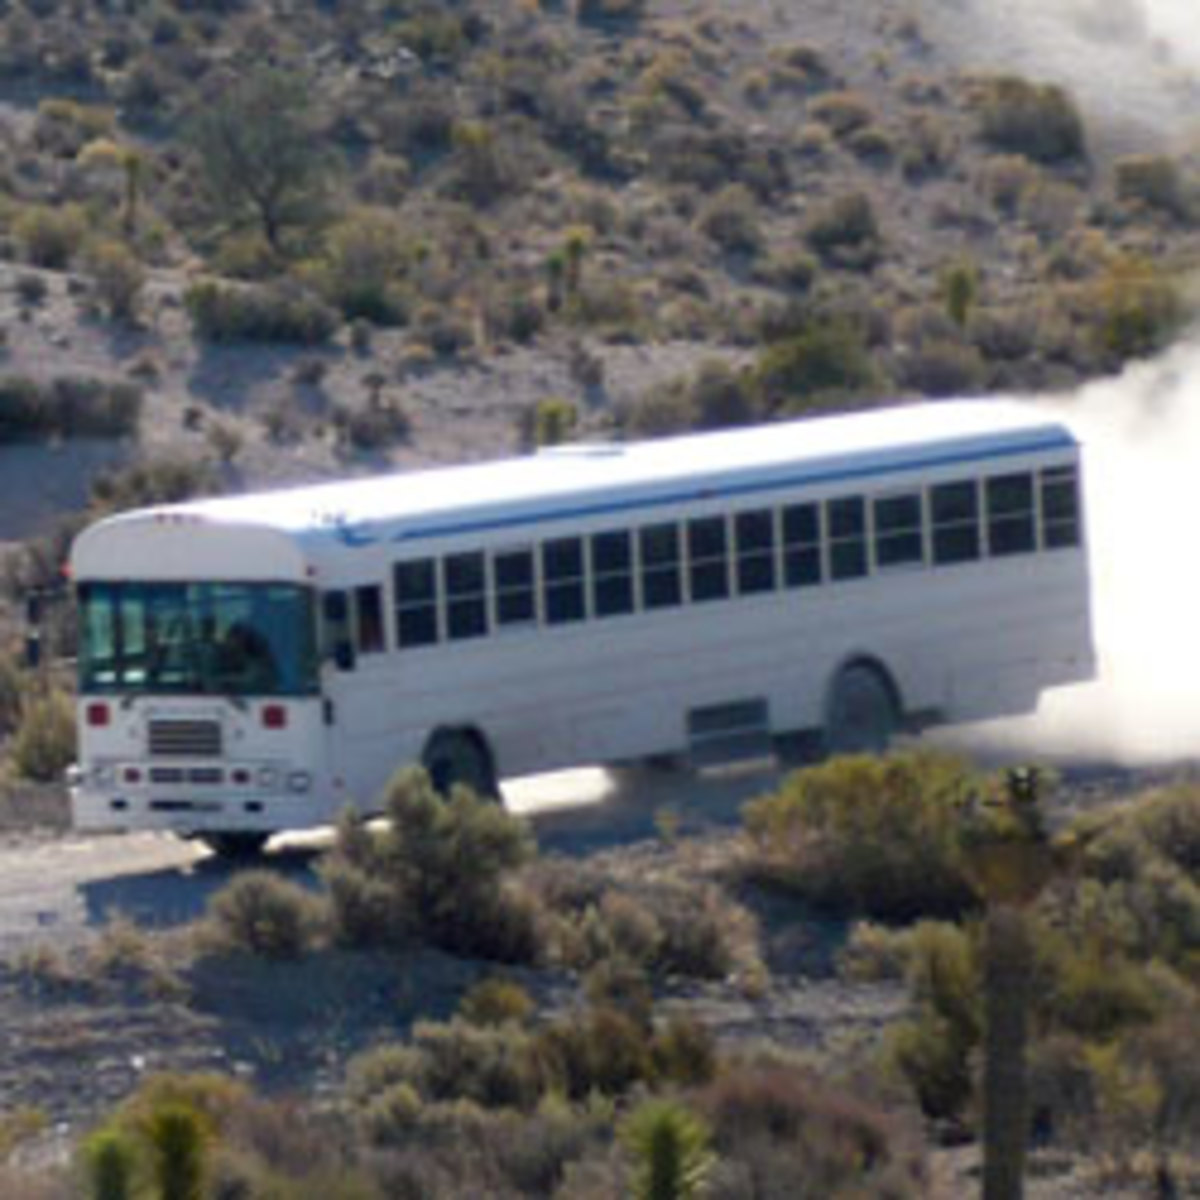 The White Bus at Area 51